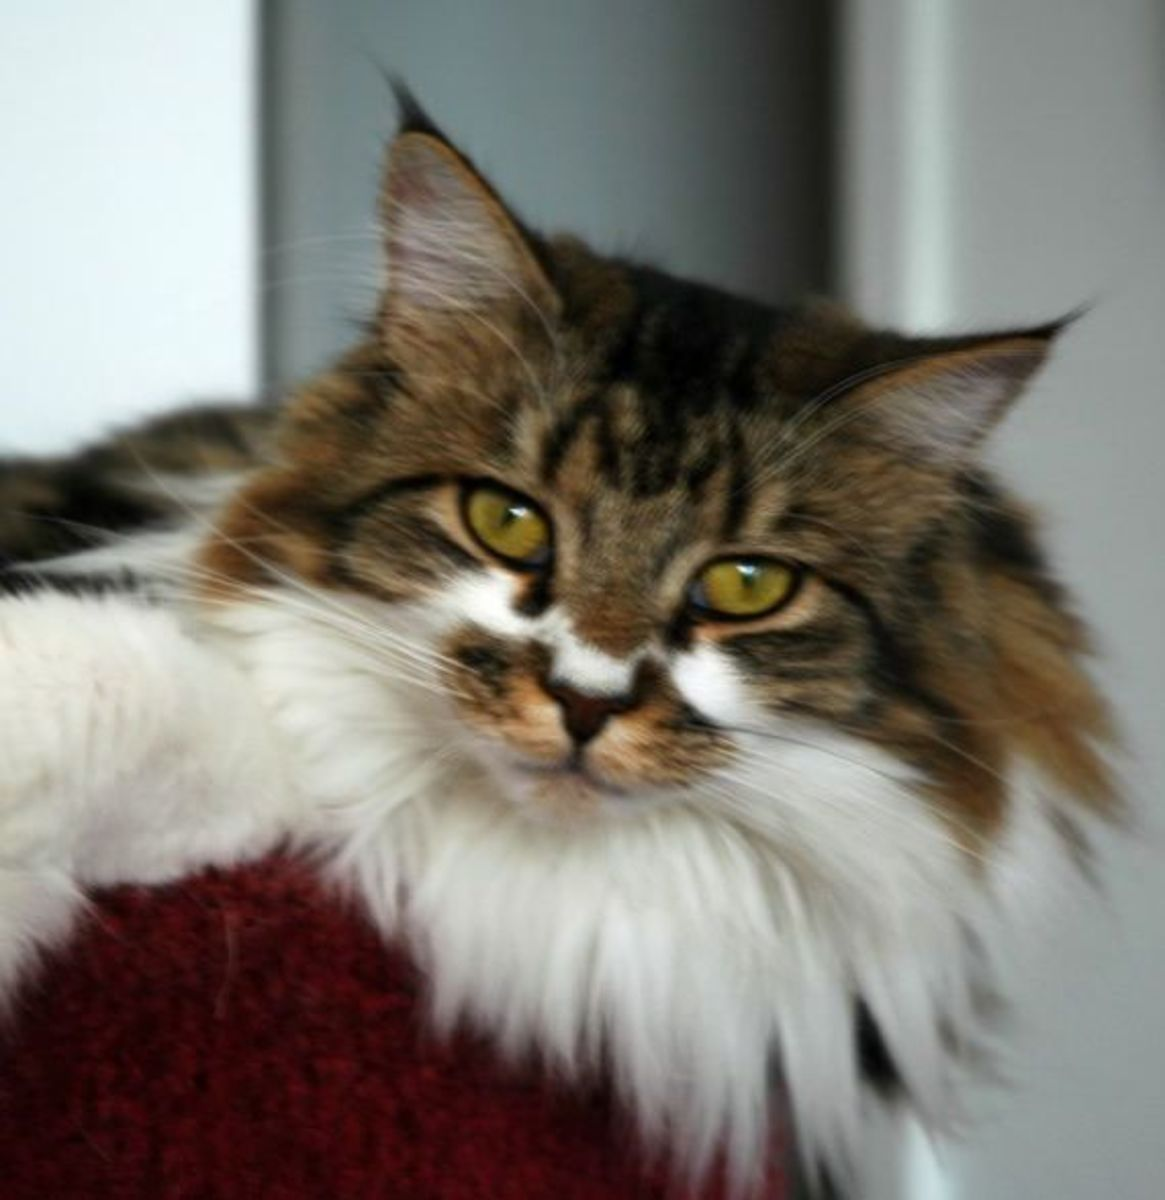 Maine Coon cats with a heavy, dense neck ruff like this one pictured above are highly sought after by aficionados of the breed.